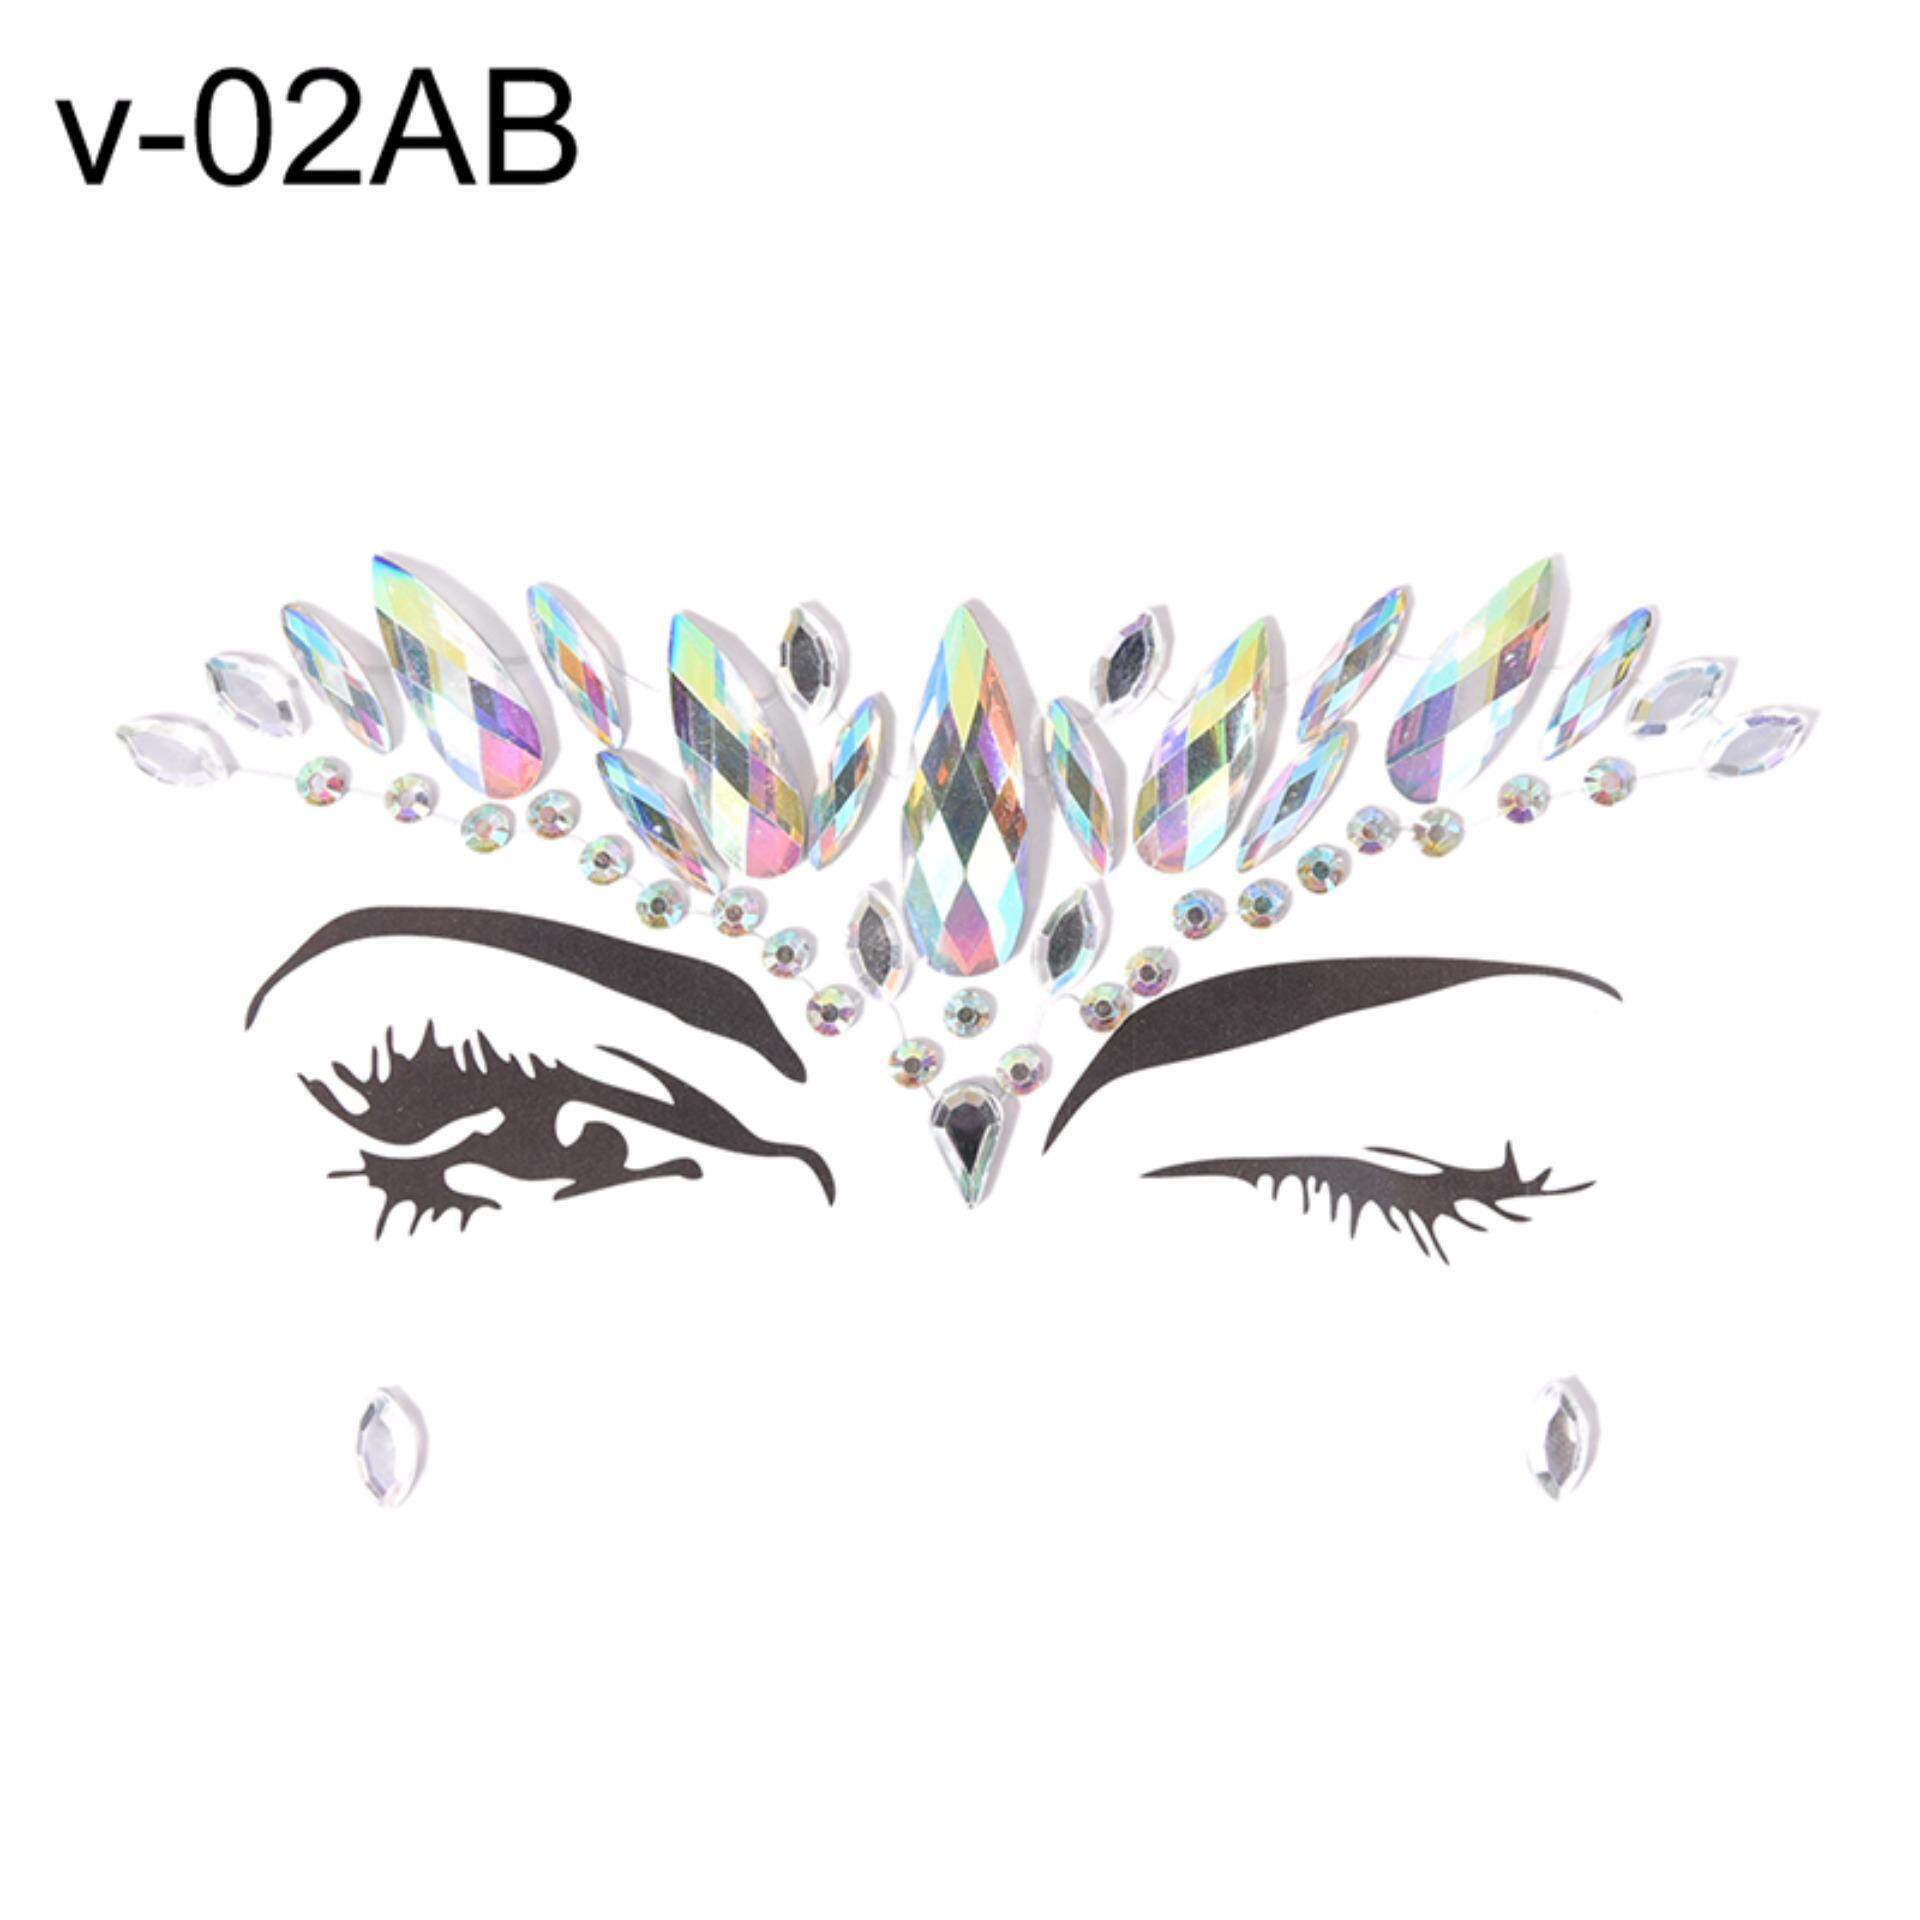 Beauty Glitter Adornment Rhinestone Crystal Tattoo Body Jewels Adhesive Face Jewelry Color: V-02 AB - intl tốt nhất